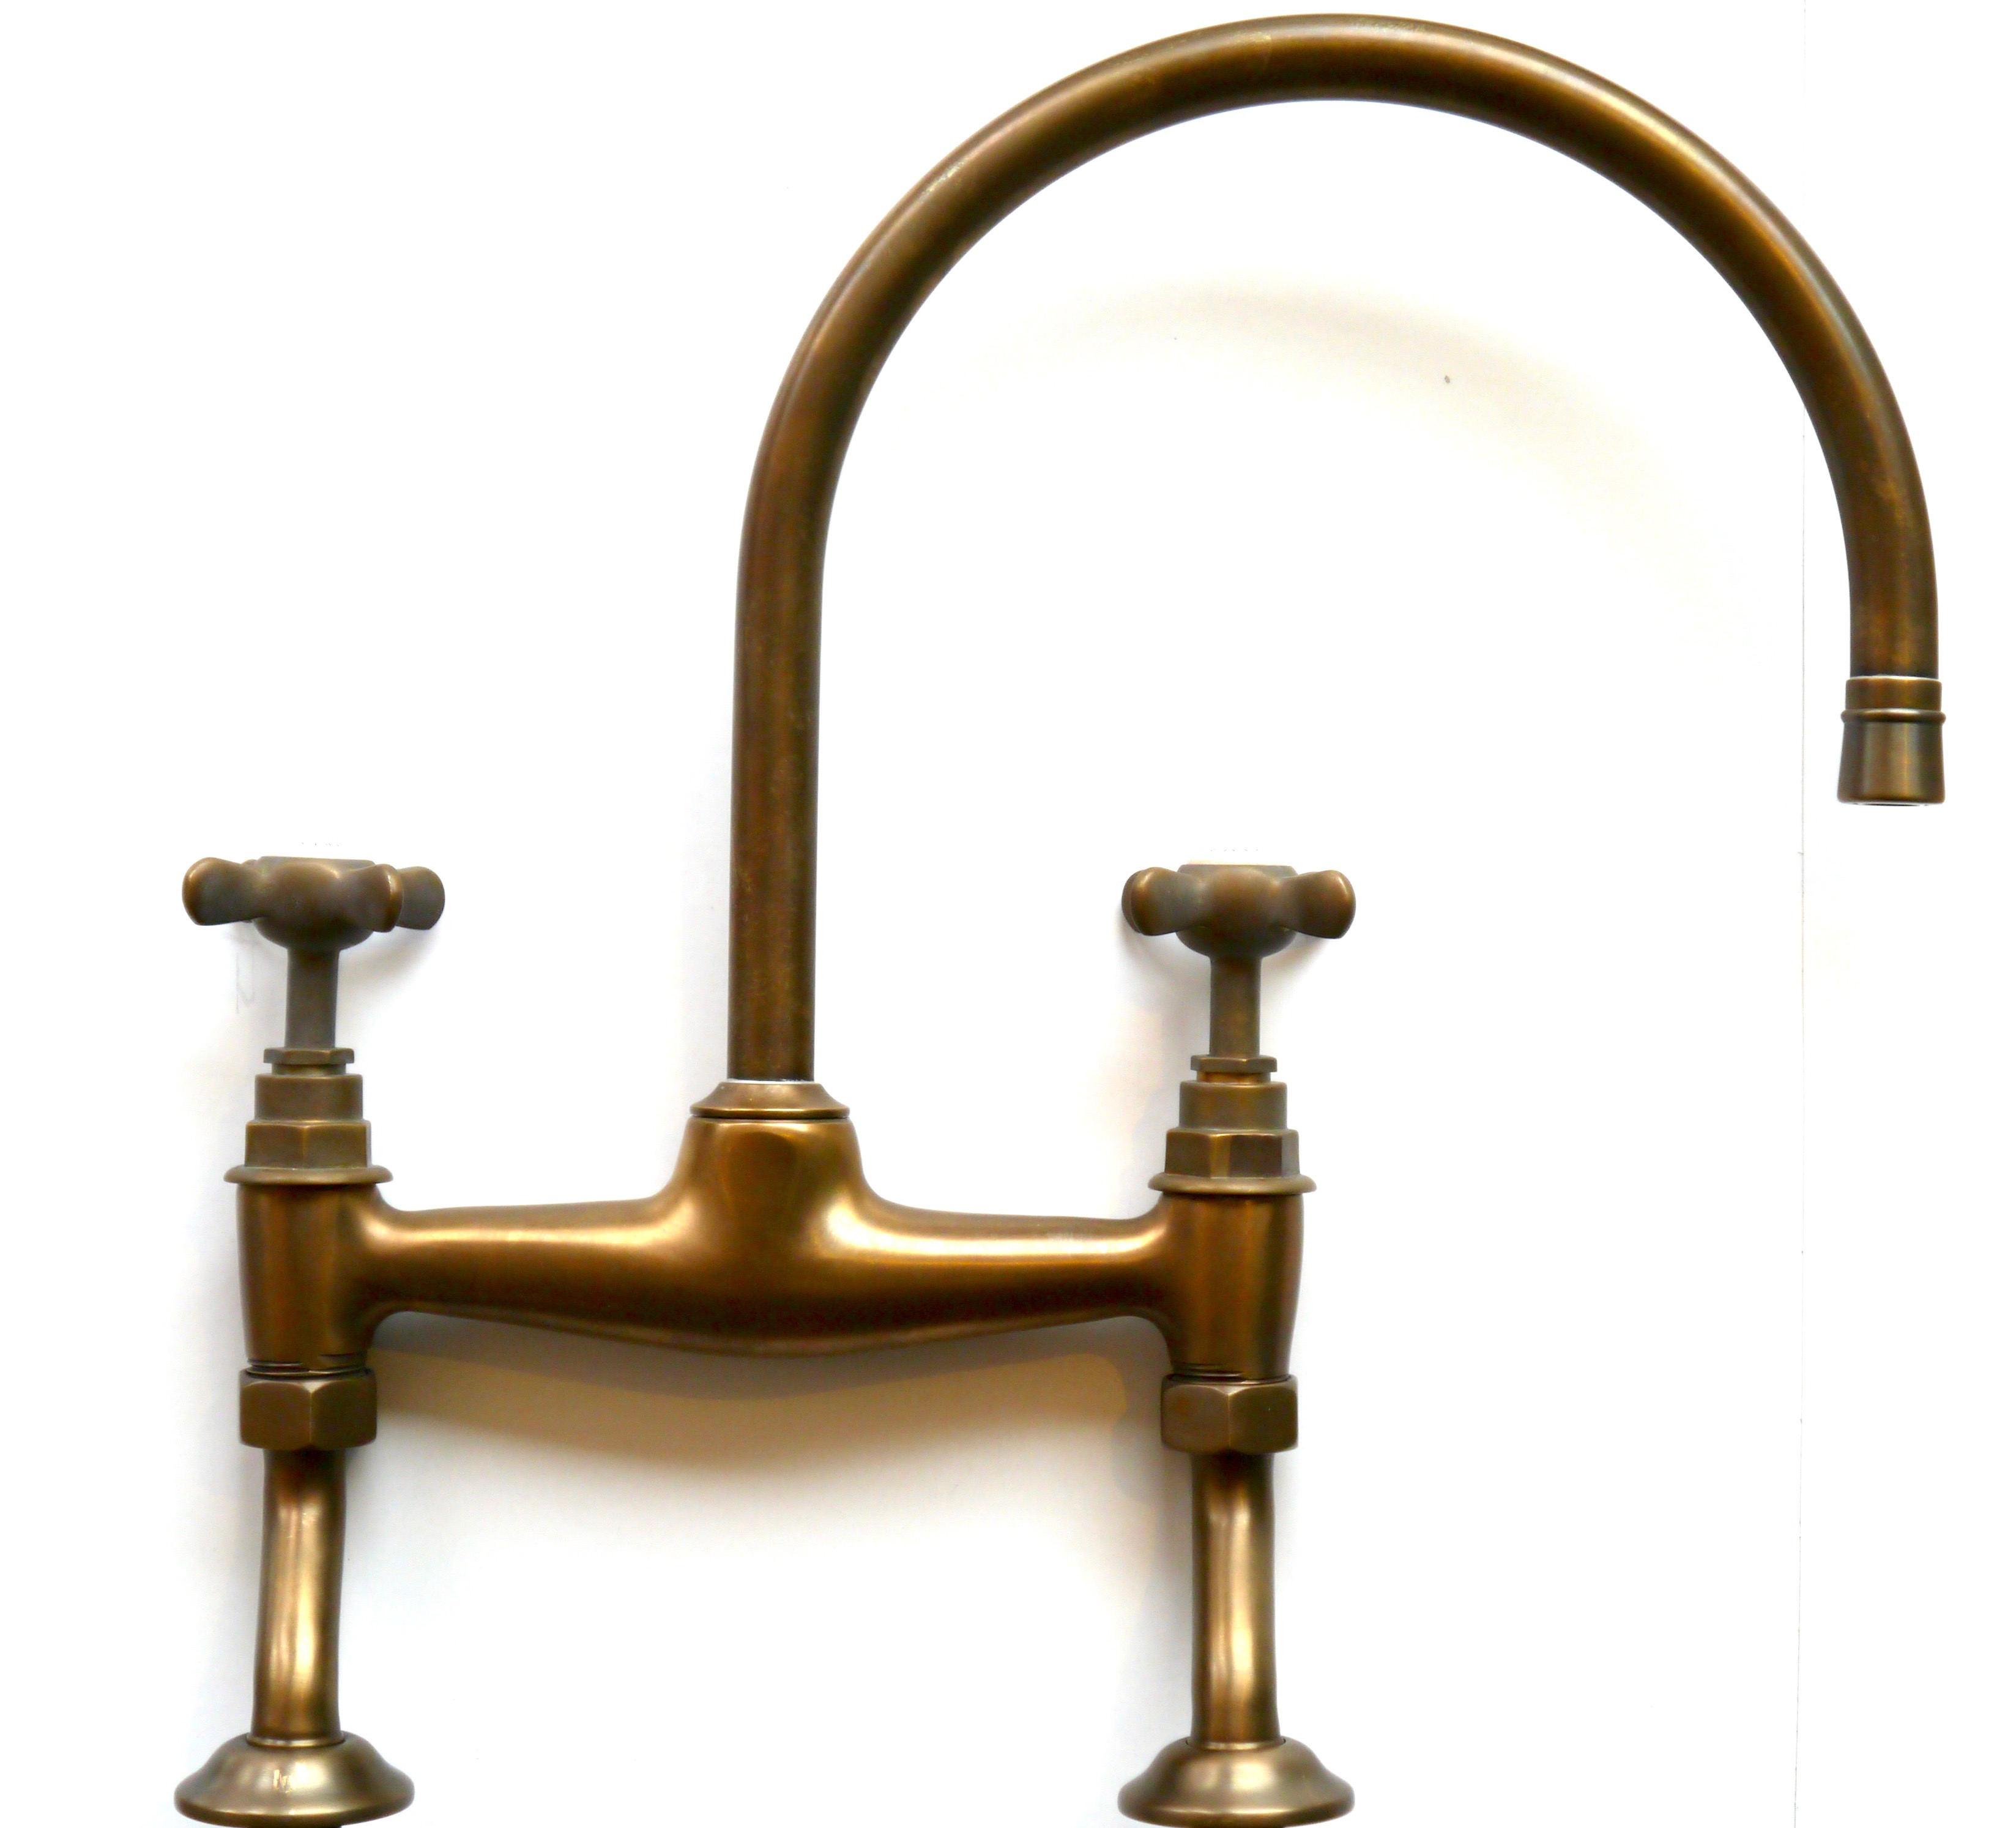 of brushed brass handle best water and devonshire kohler madrigalibz looking arc centerset bathroom faucet mid aged inspiration gorgeous majestic site faucets in saving nickel